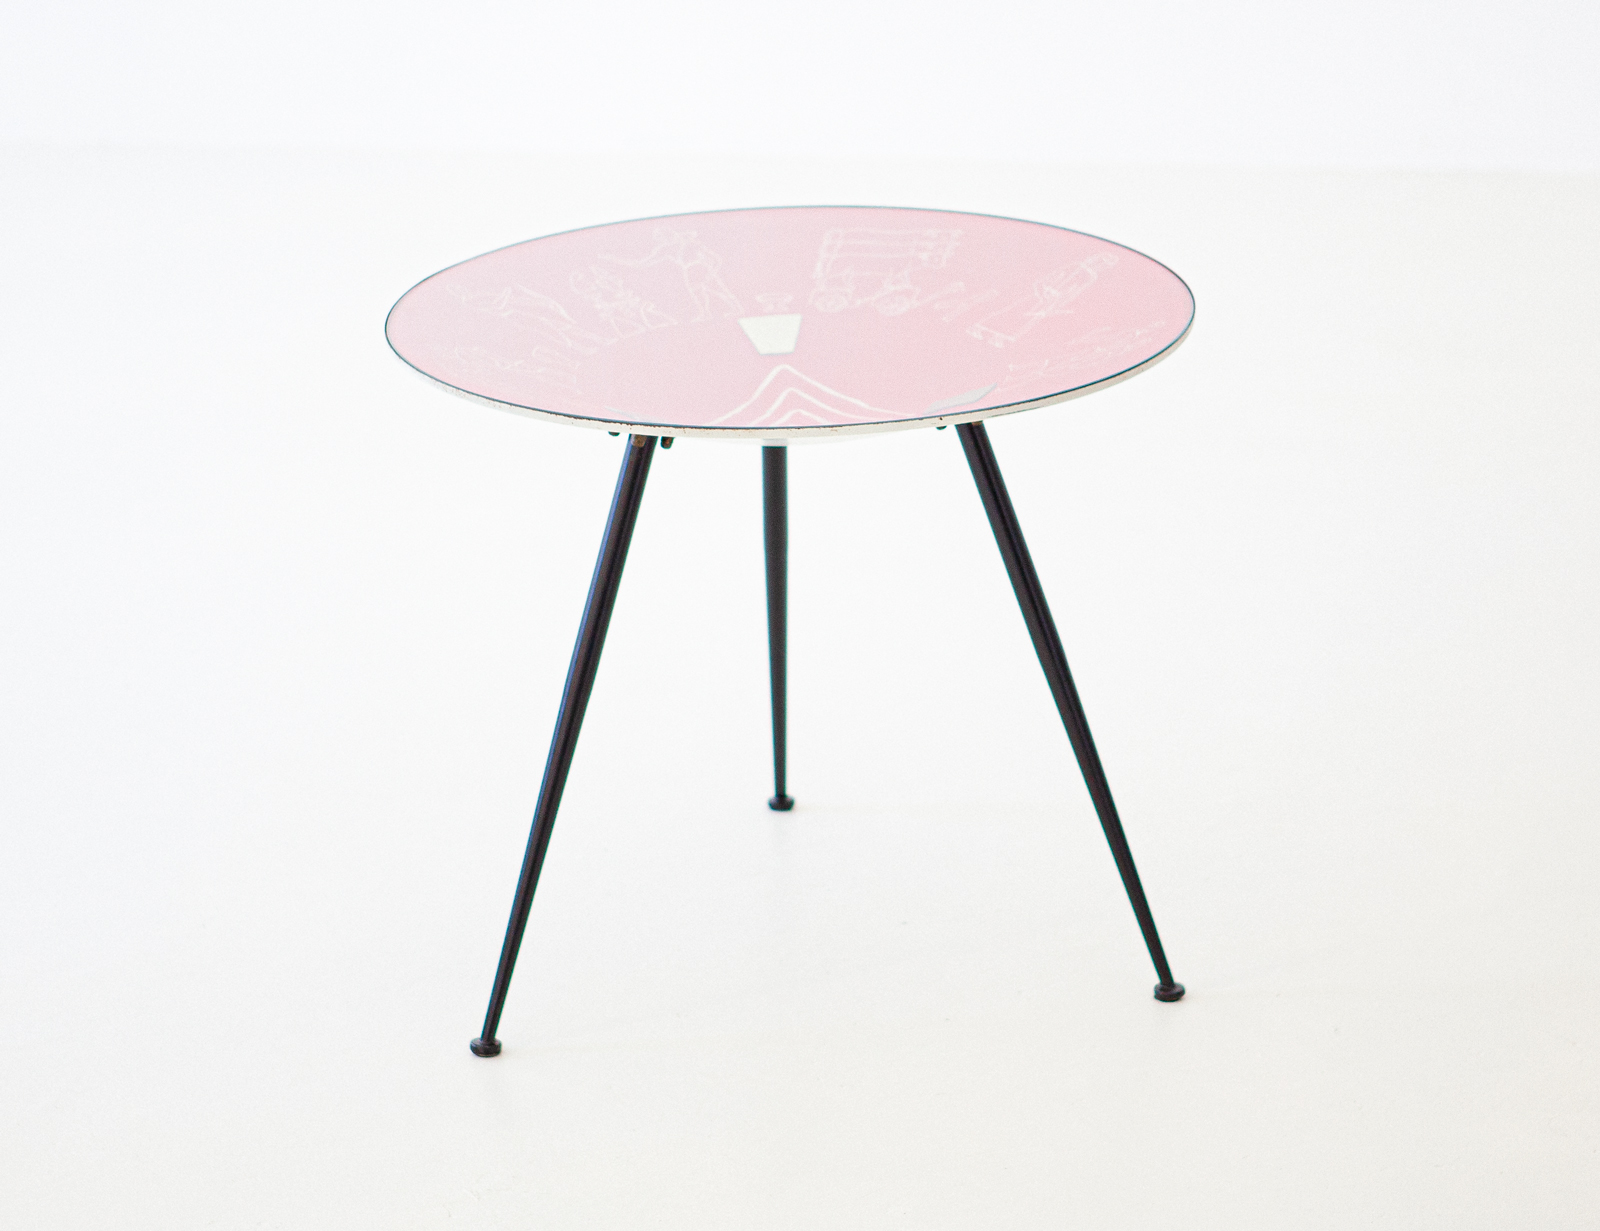 1950s-italian-modern-round-red-coffee-table-4-t82